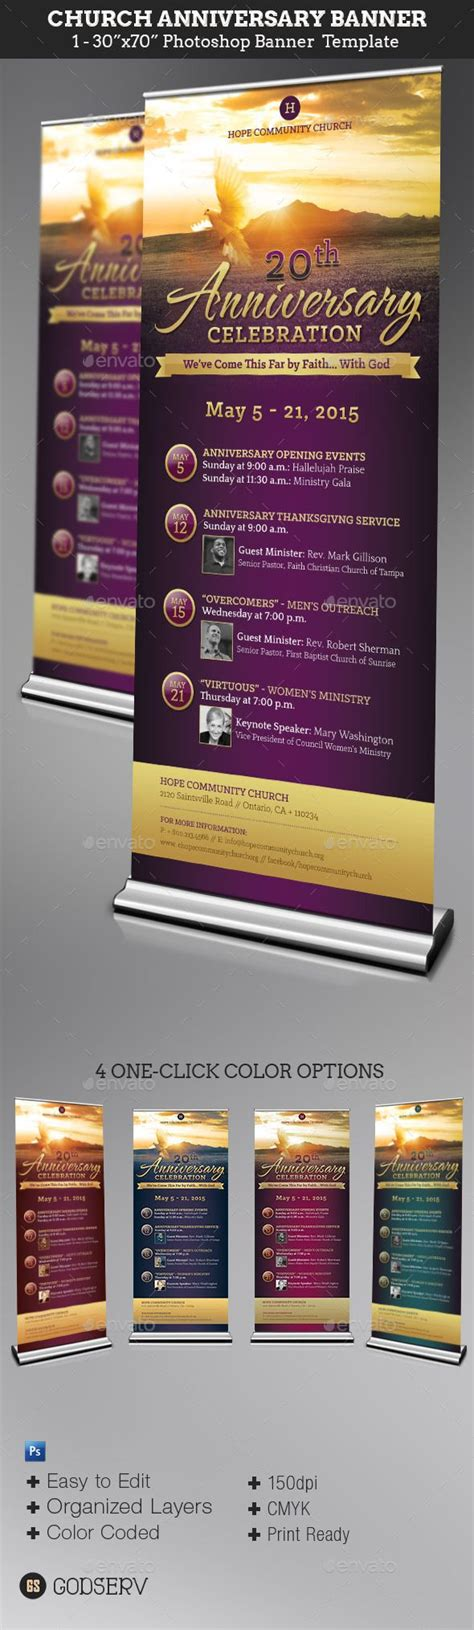 Templates For Church Banners | 25 best ideas about banner template on pinterest